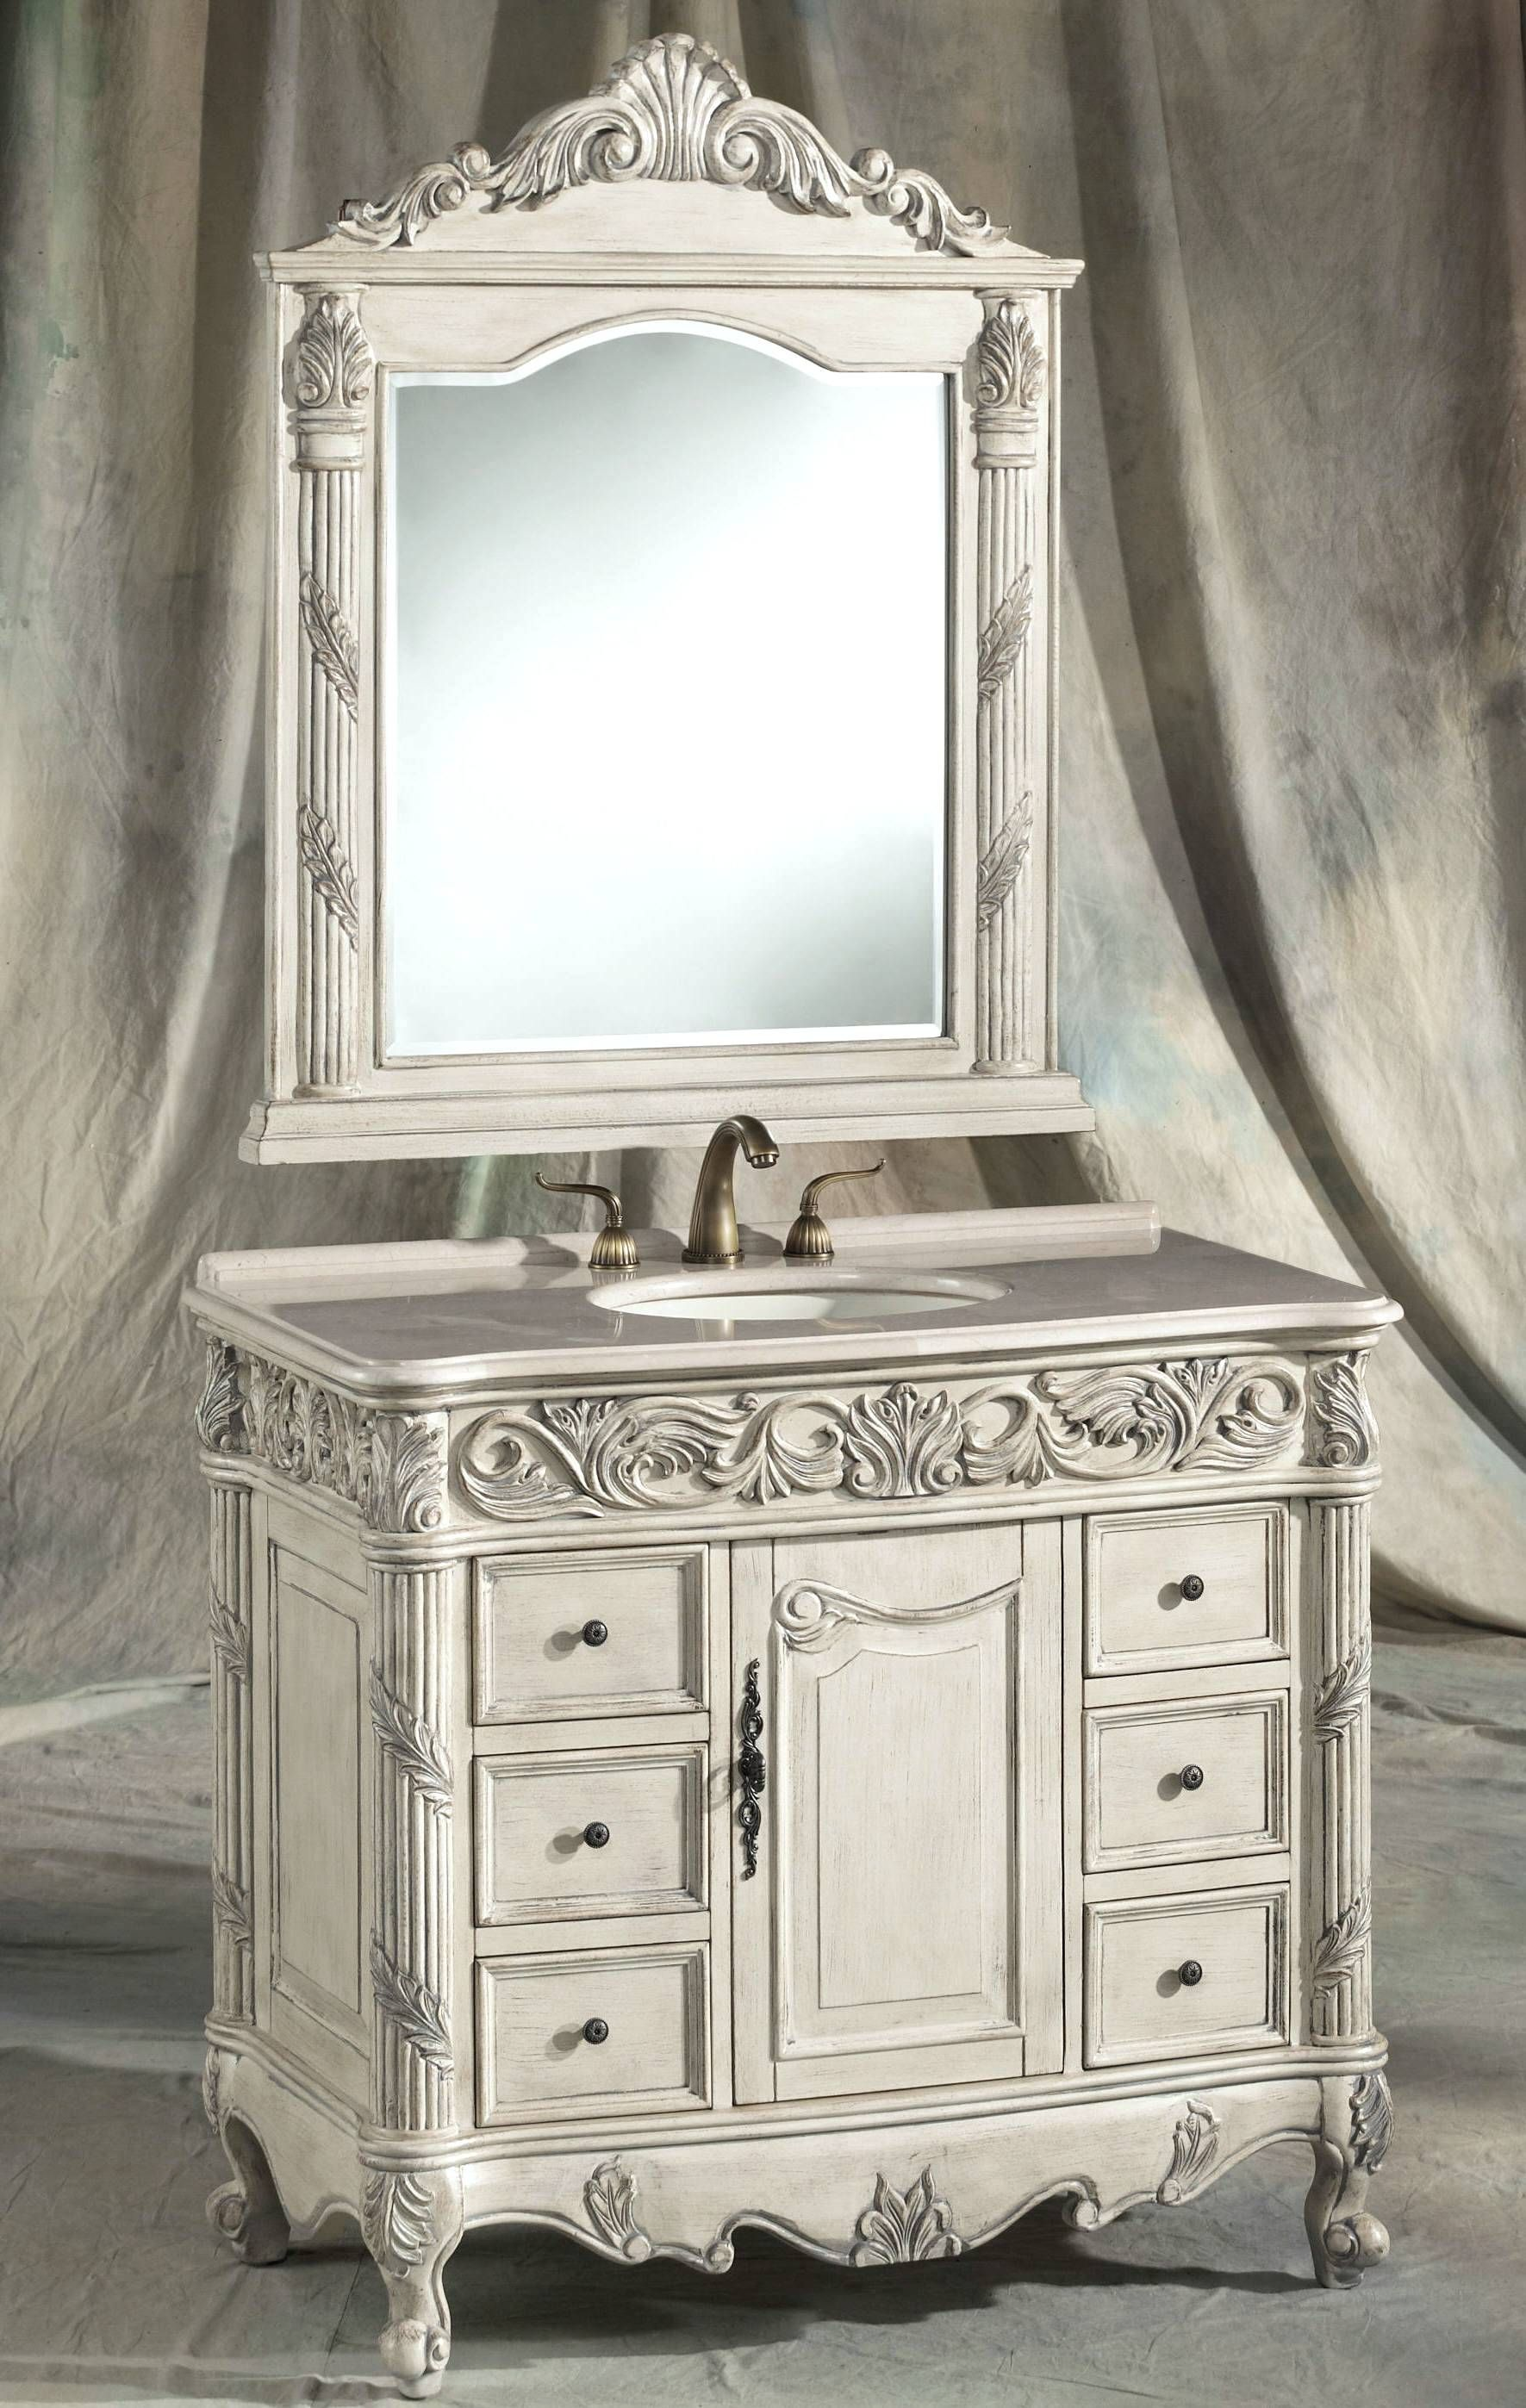 Our Main Bathroom Vanity Mirror Shabby Chic Bathroom Vanity Shabby Chic Bathroom Chic Bathrooms